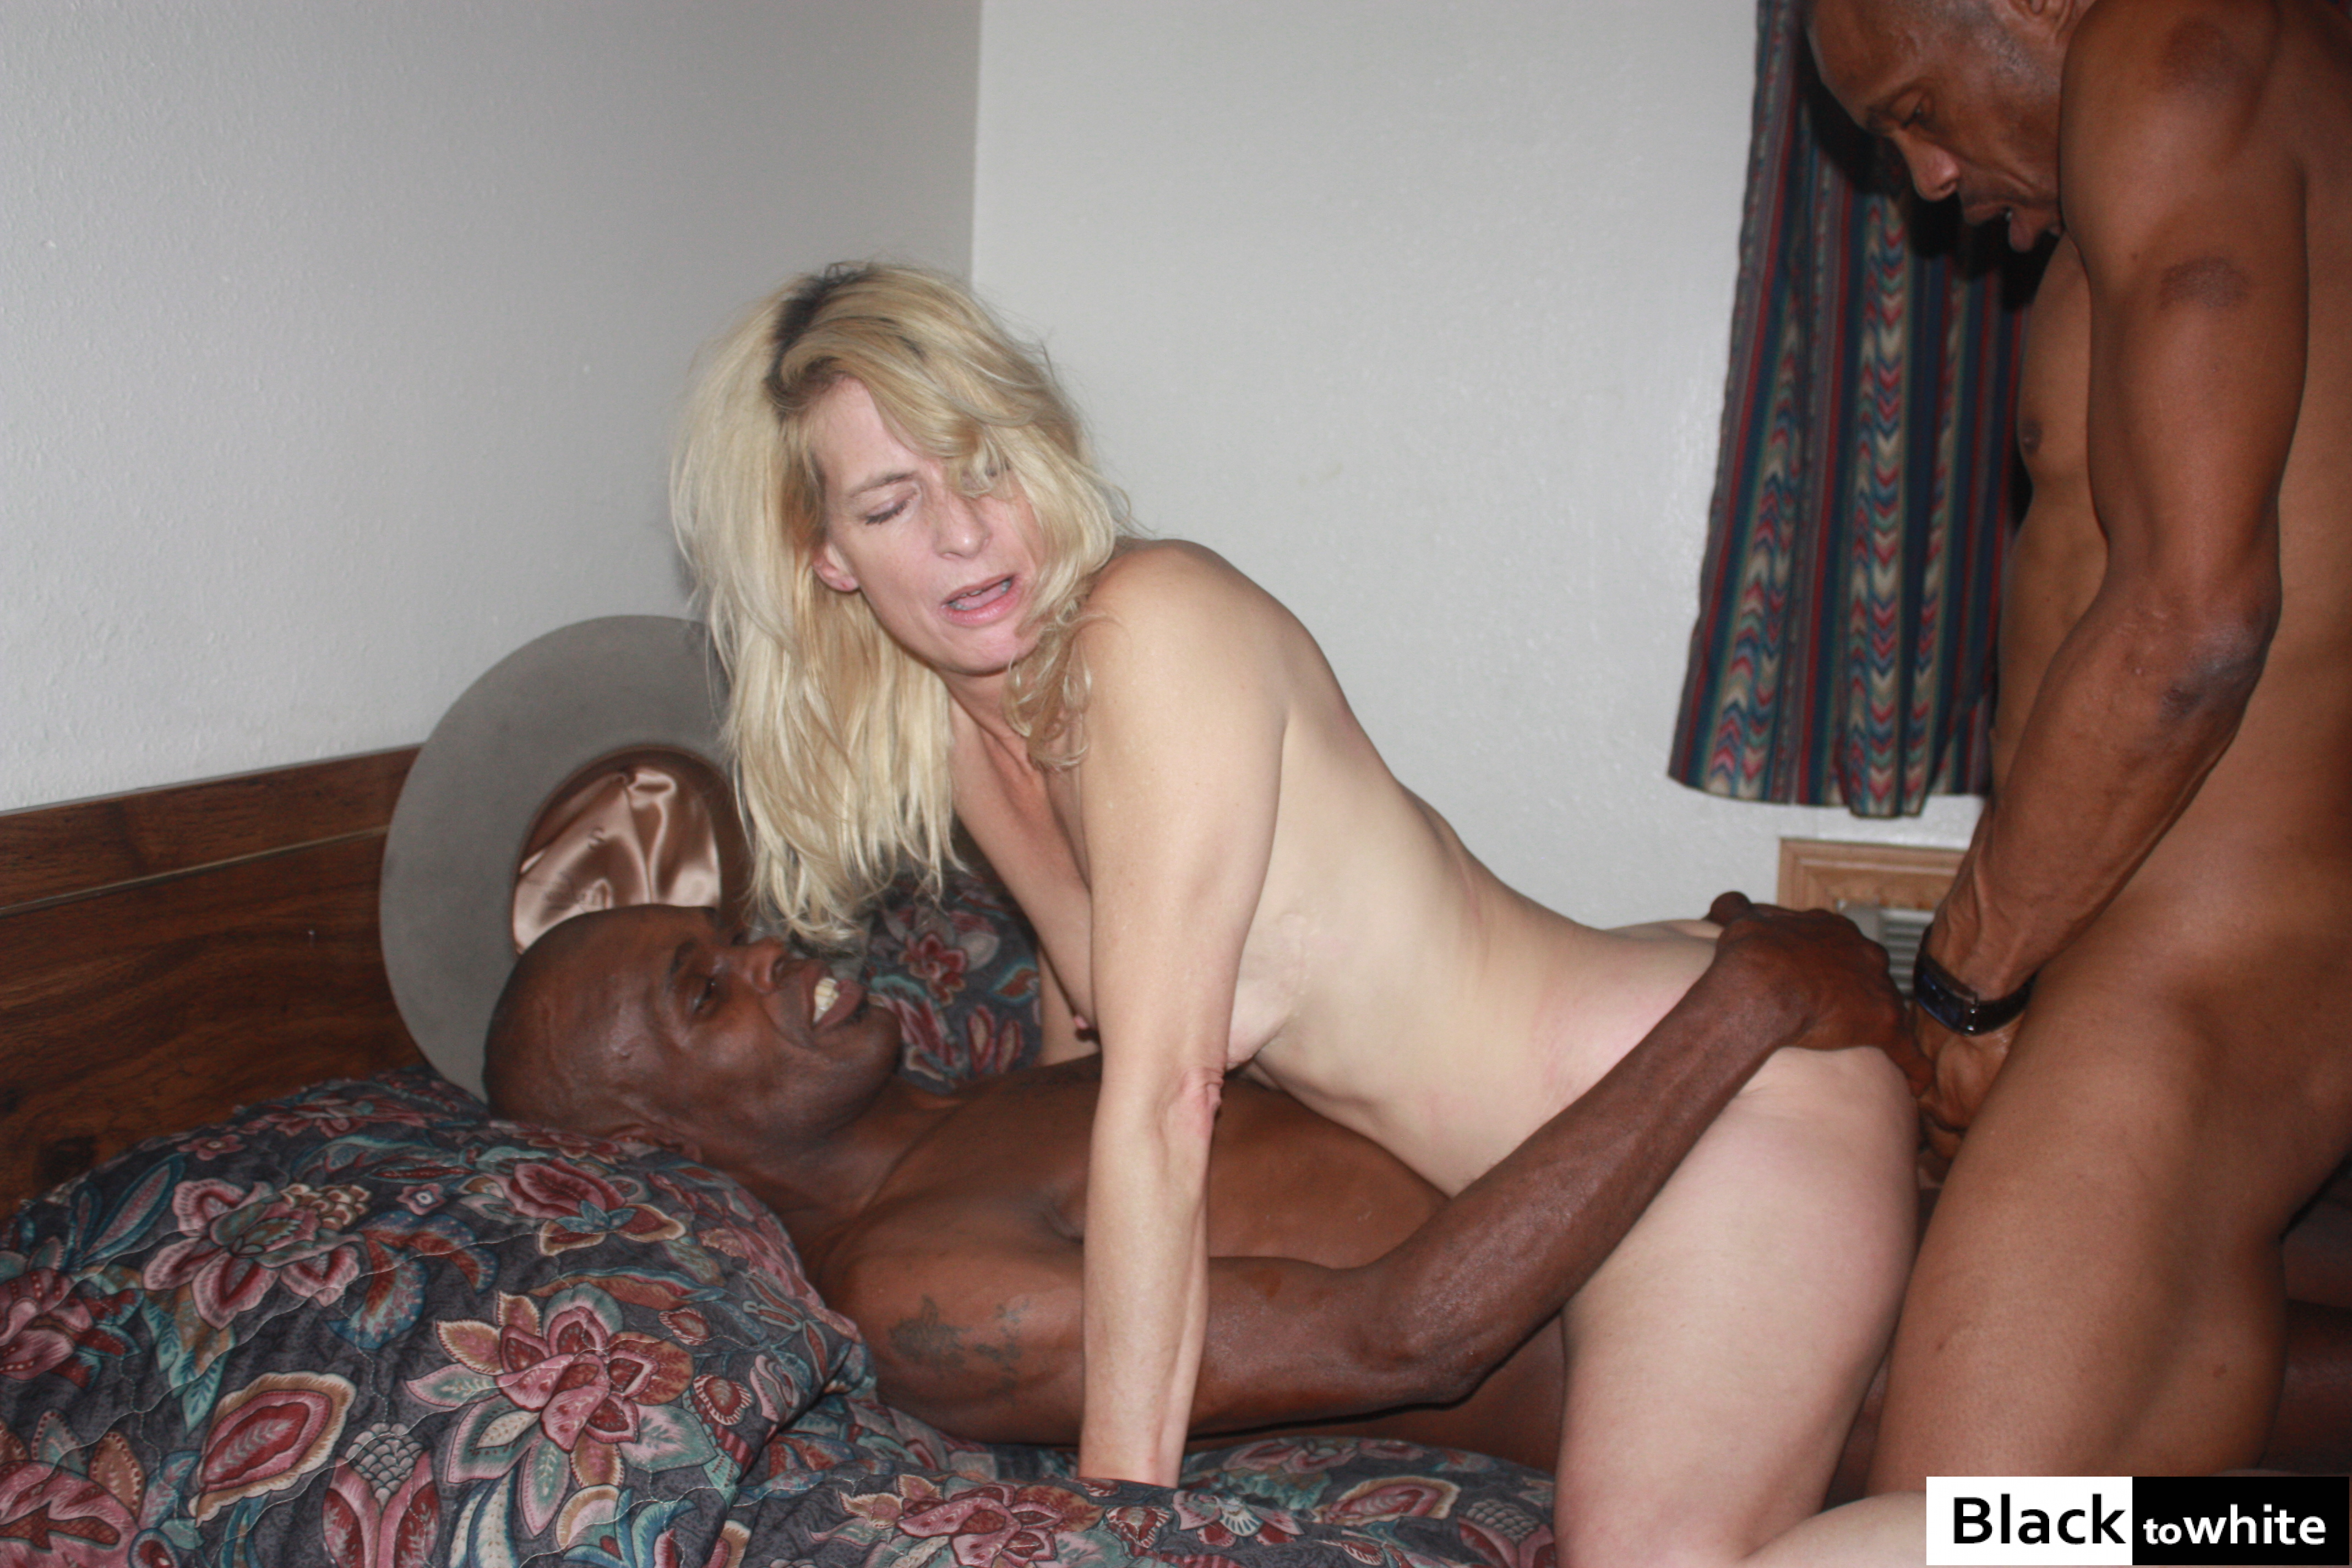 interracial sex forum